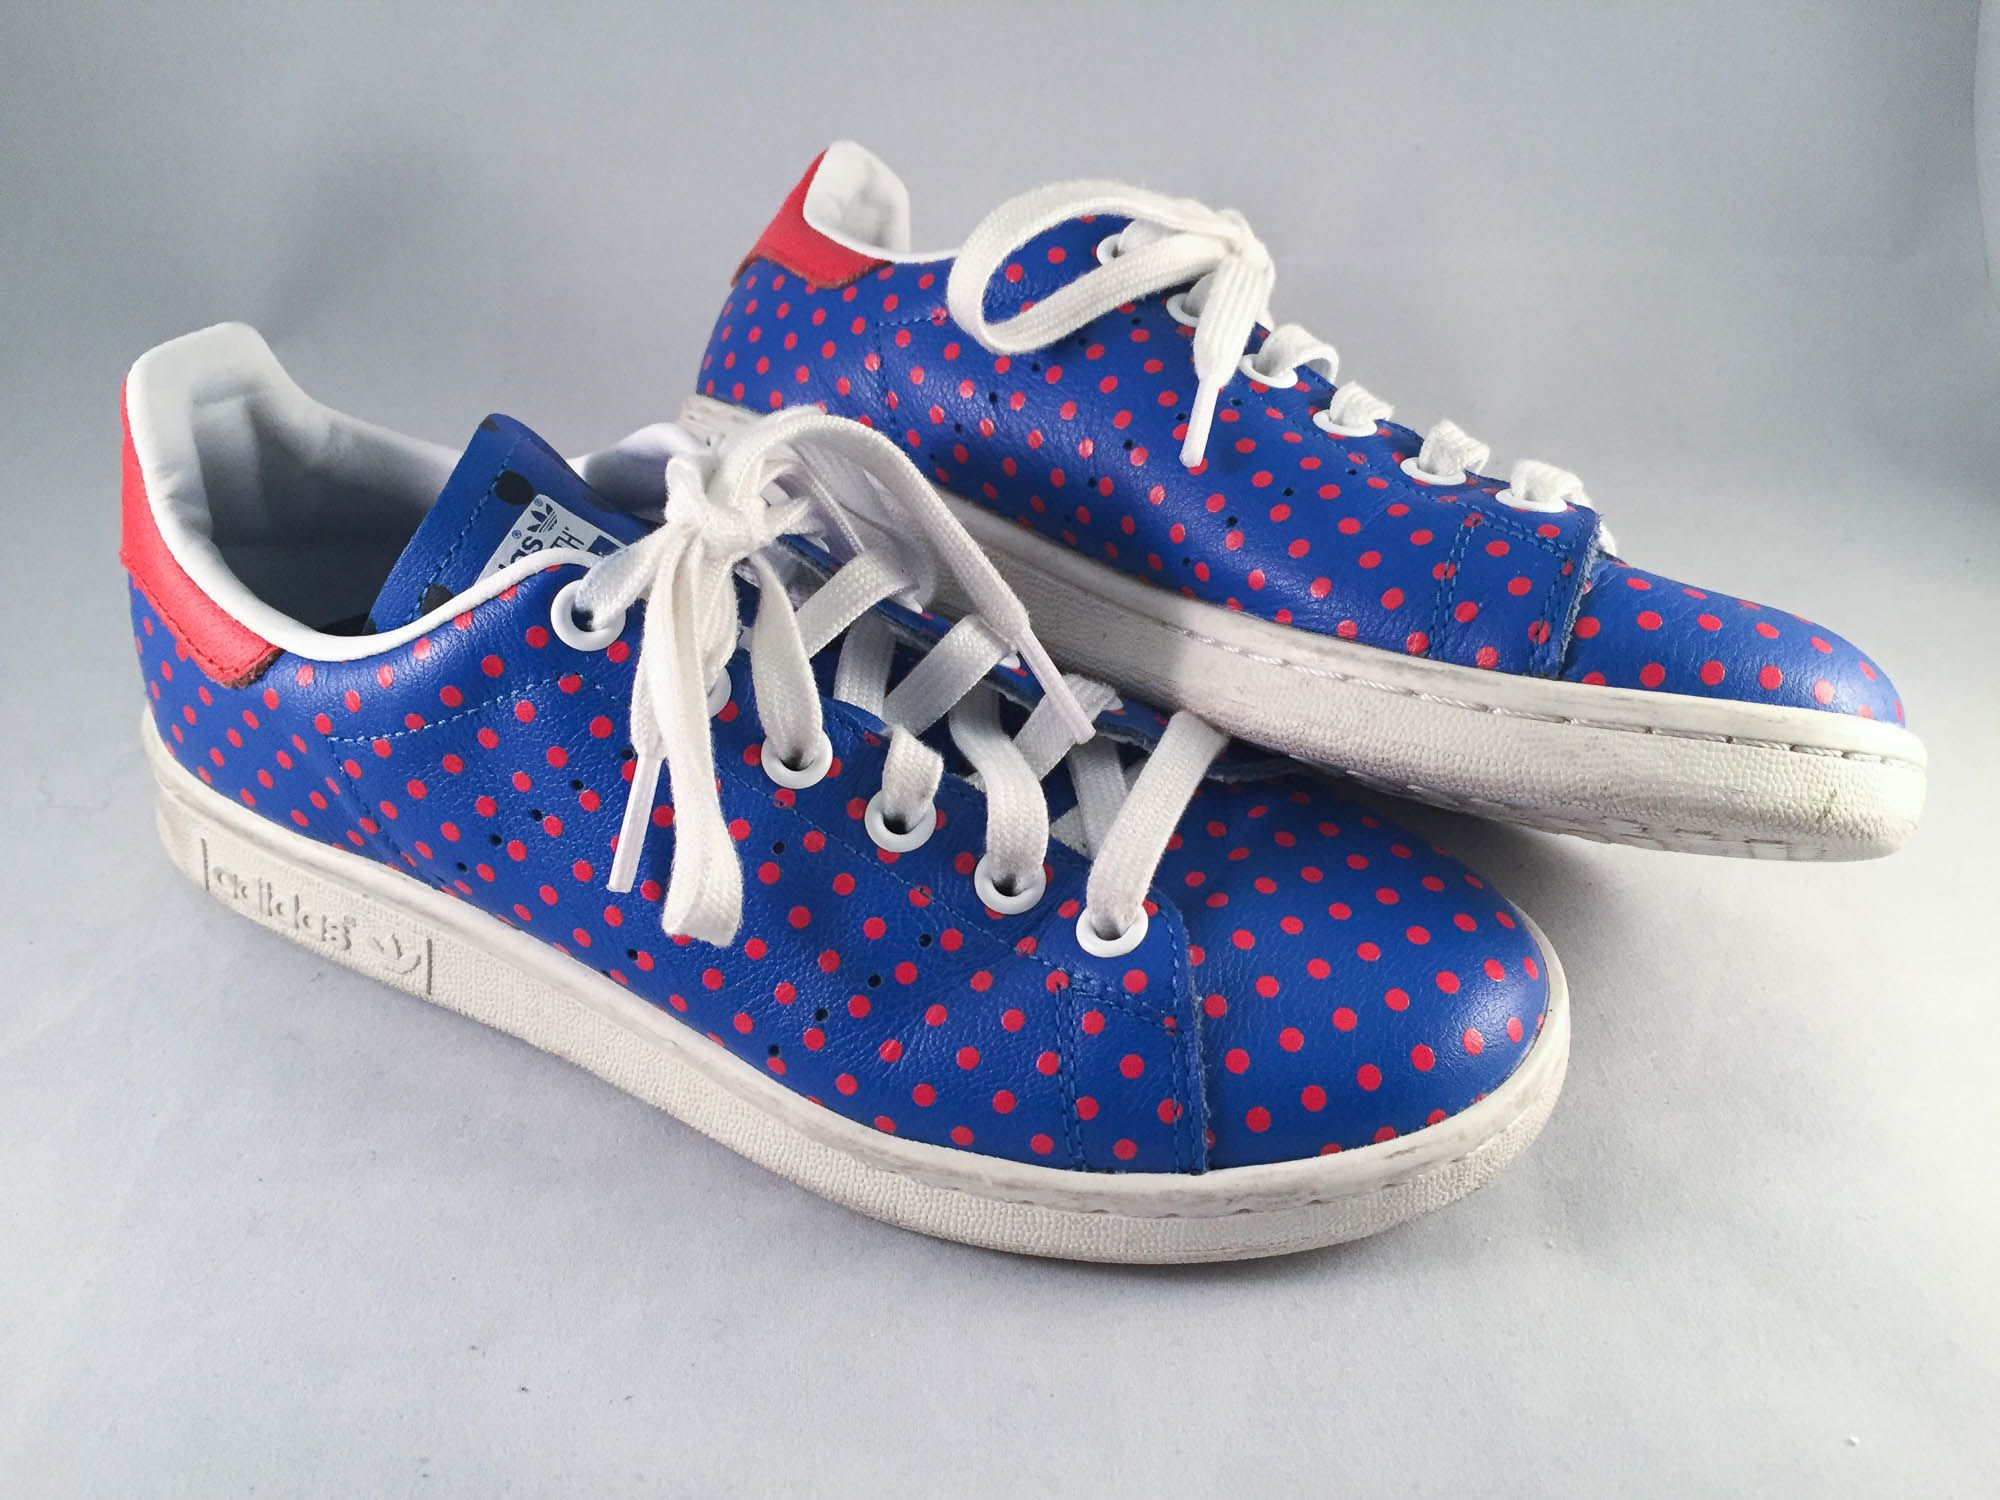 sports shoes 70804 0849d Adidas PW Stan Smith SPD Polka Dots Blue and Red - Sz 5 ...